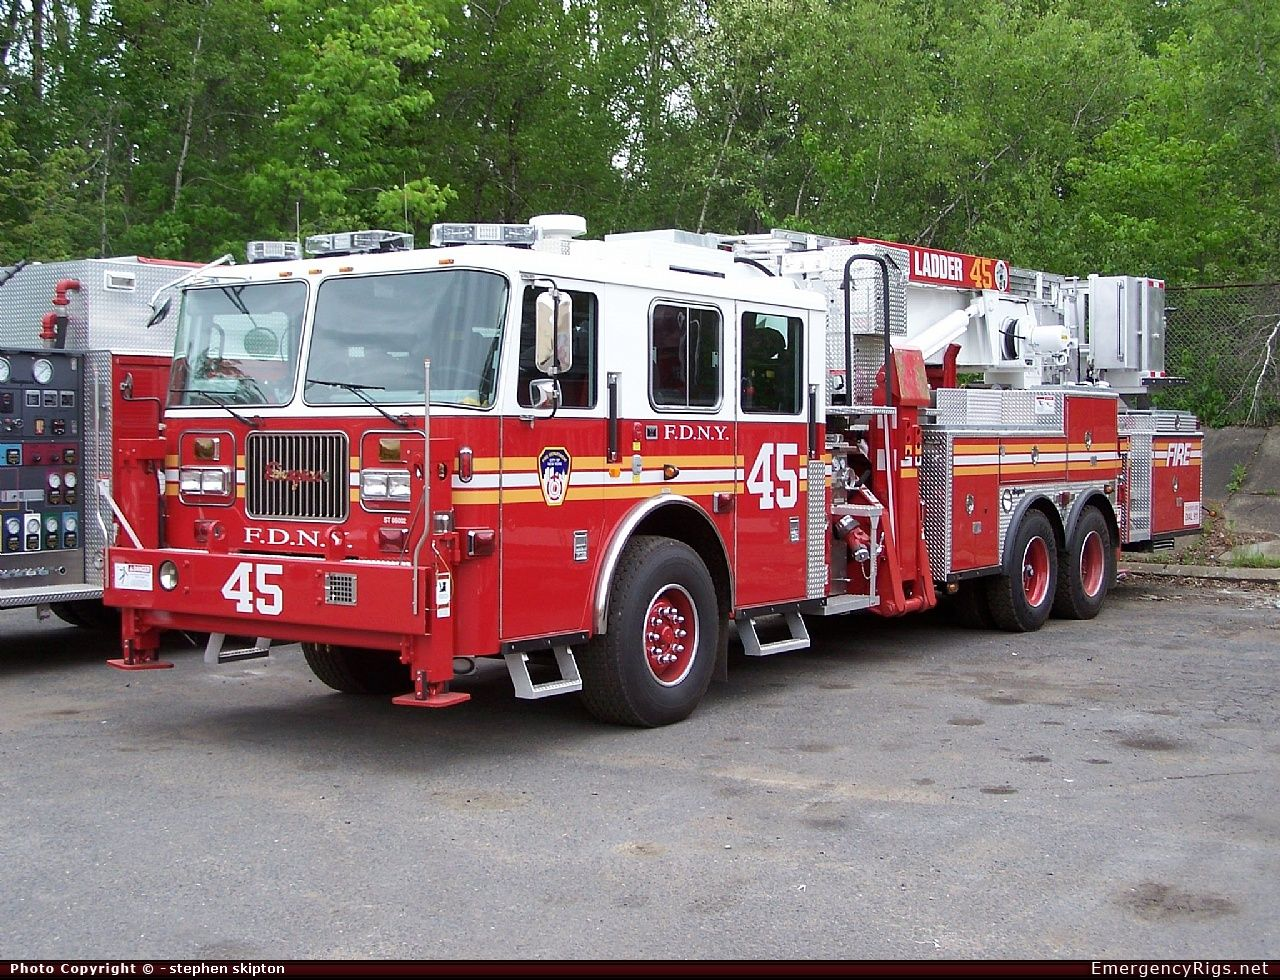 Fire Trucks Responding | ... City Fire Department (F.D.N.Y) Emergency Apparatus Fire Truck Photo